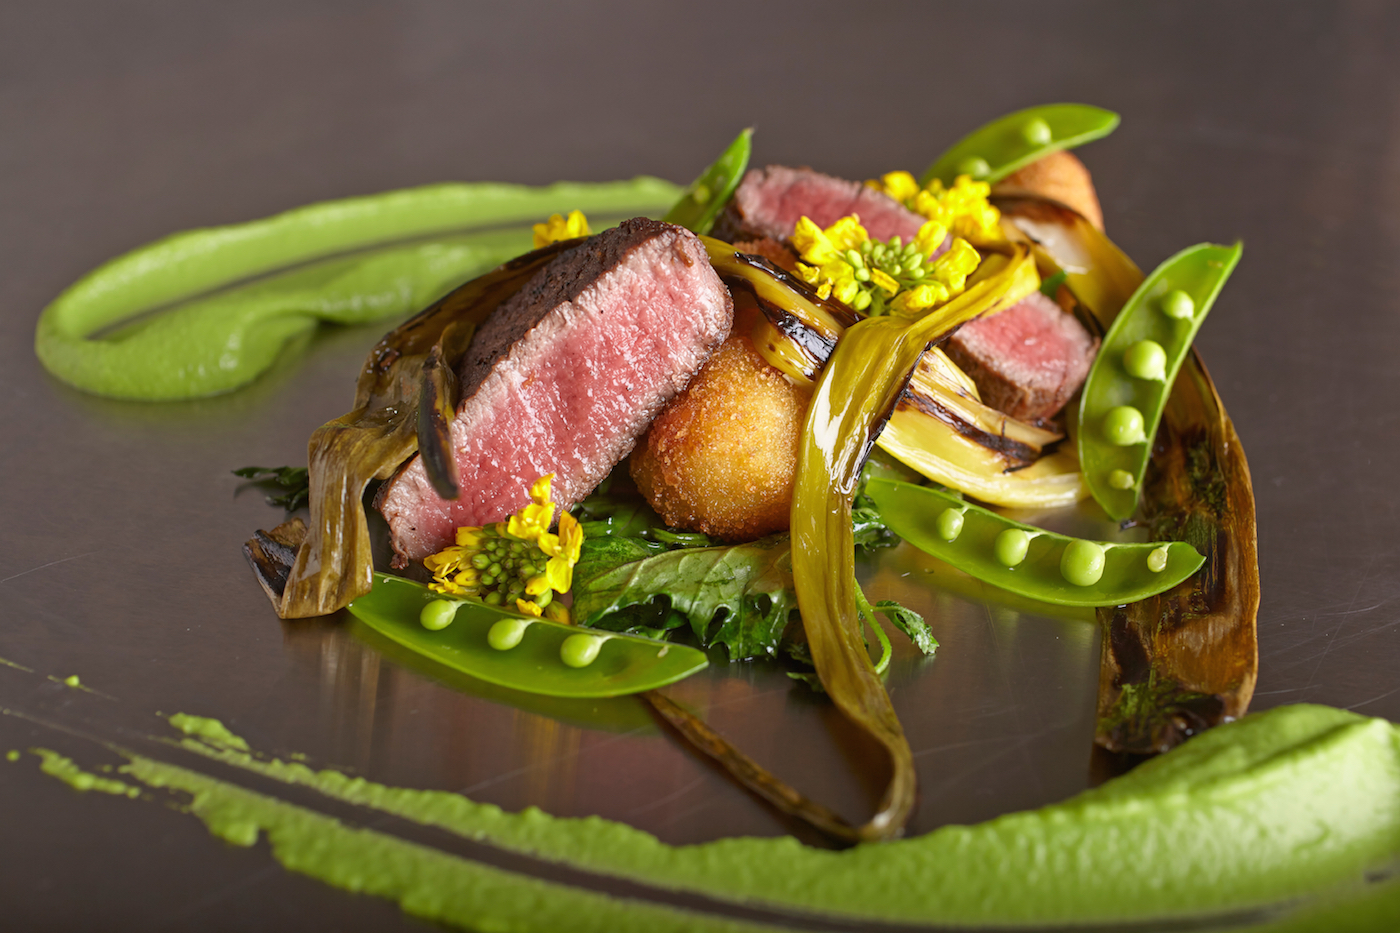 Filet mignon- sustainably sourced cuisine from global gourmet